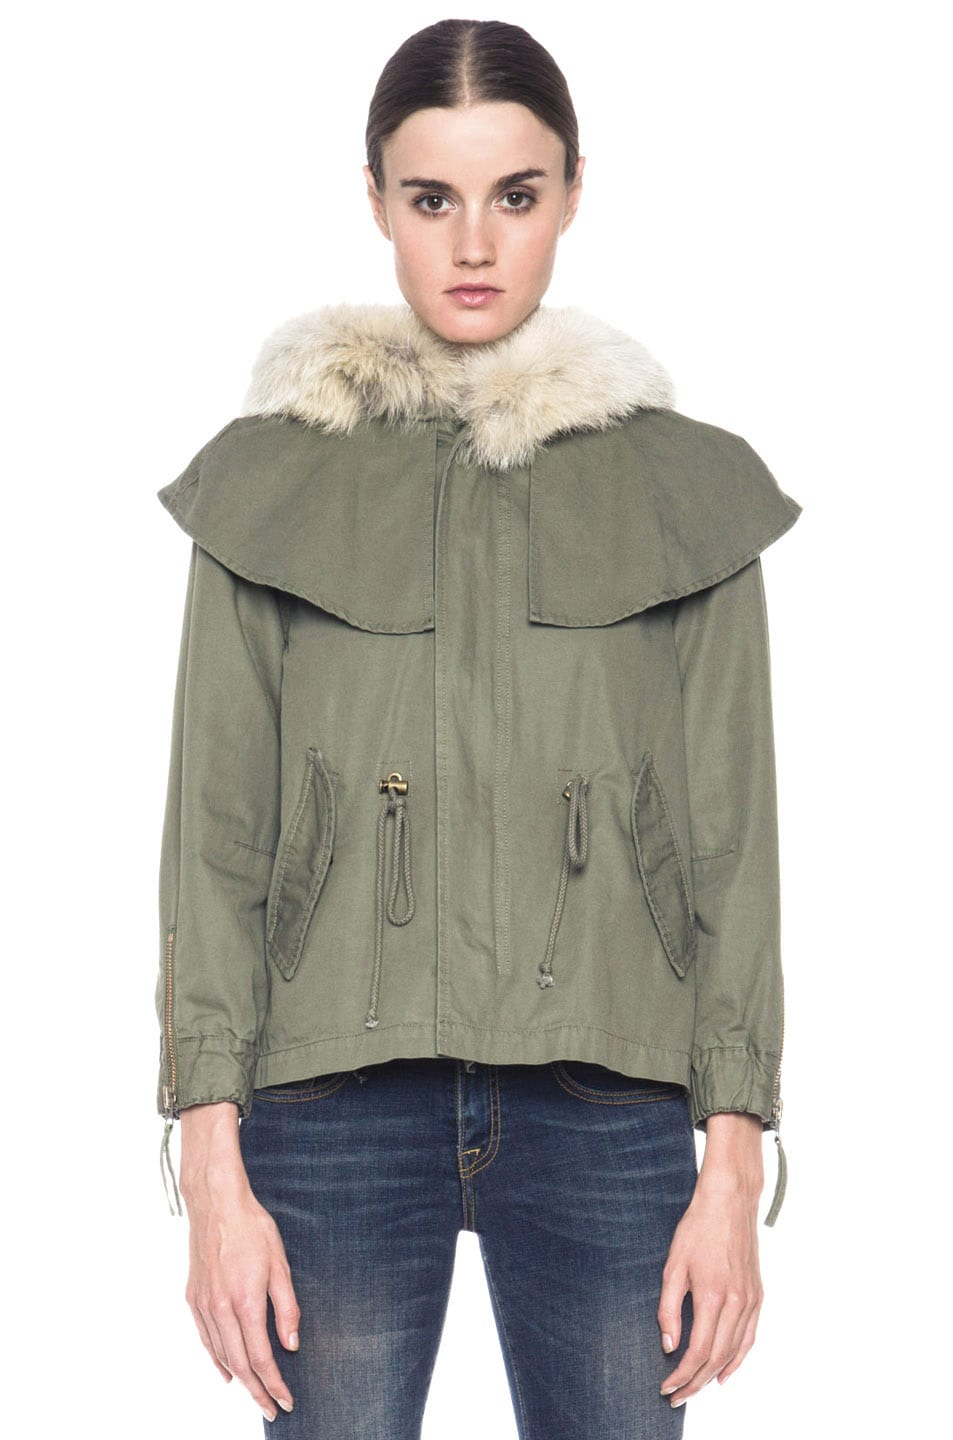 Image 2 of Skaist Taylor Cropped Cape Cotton Jacket with Fur in Army Green